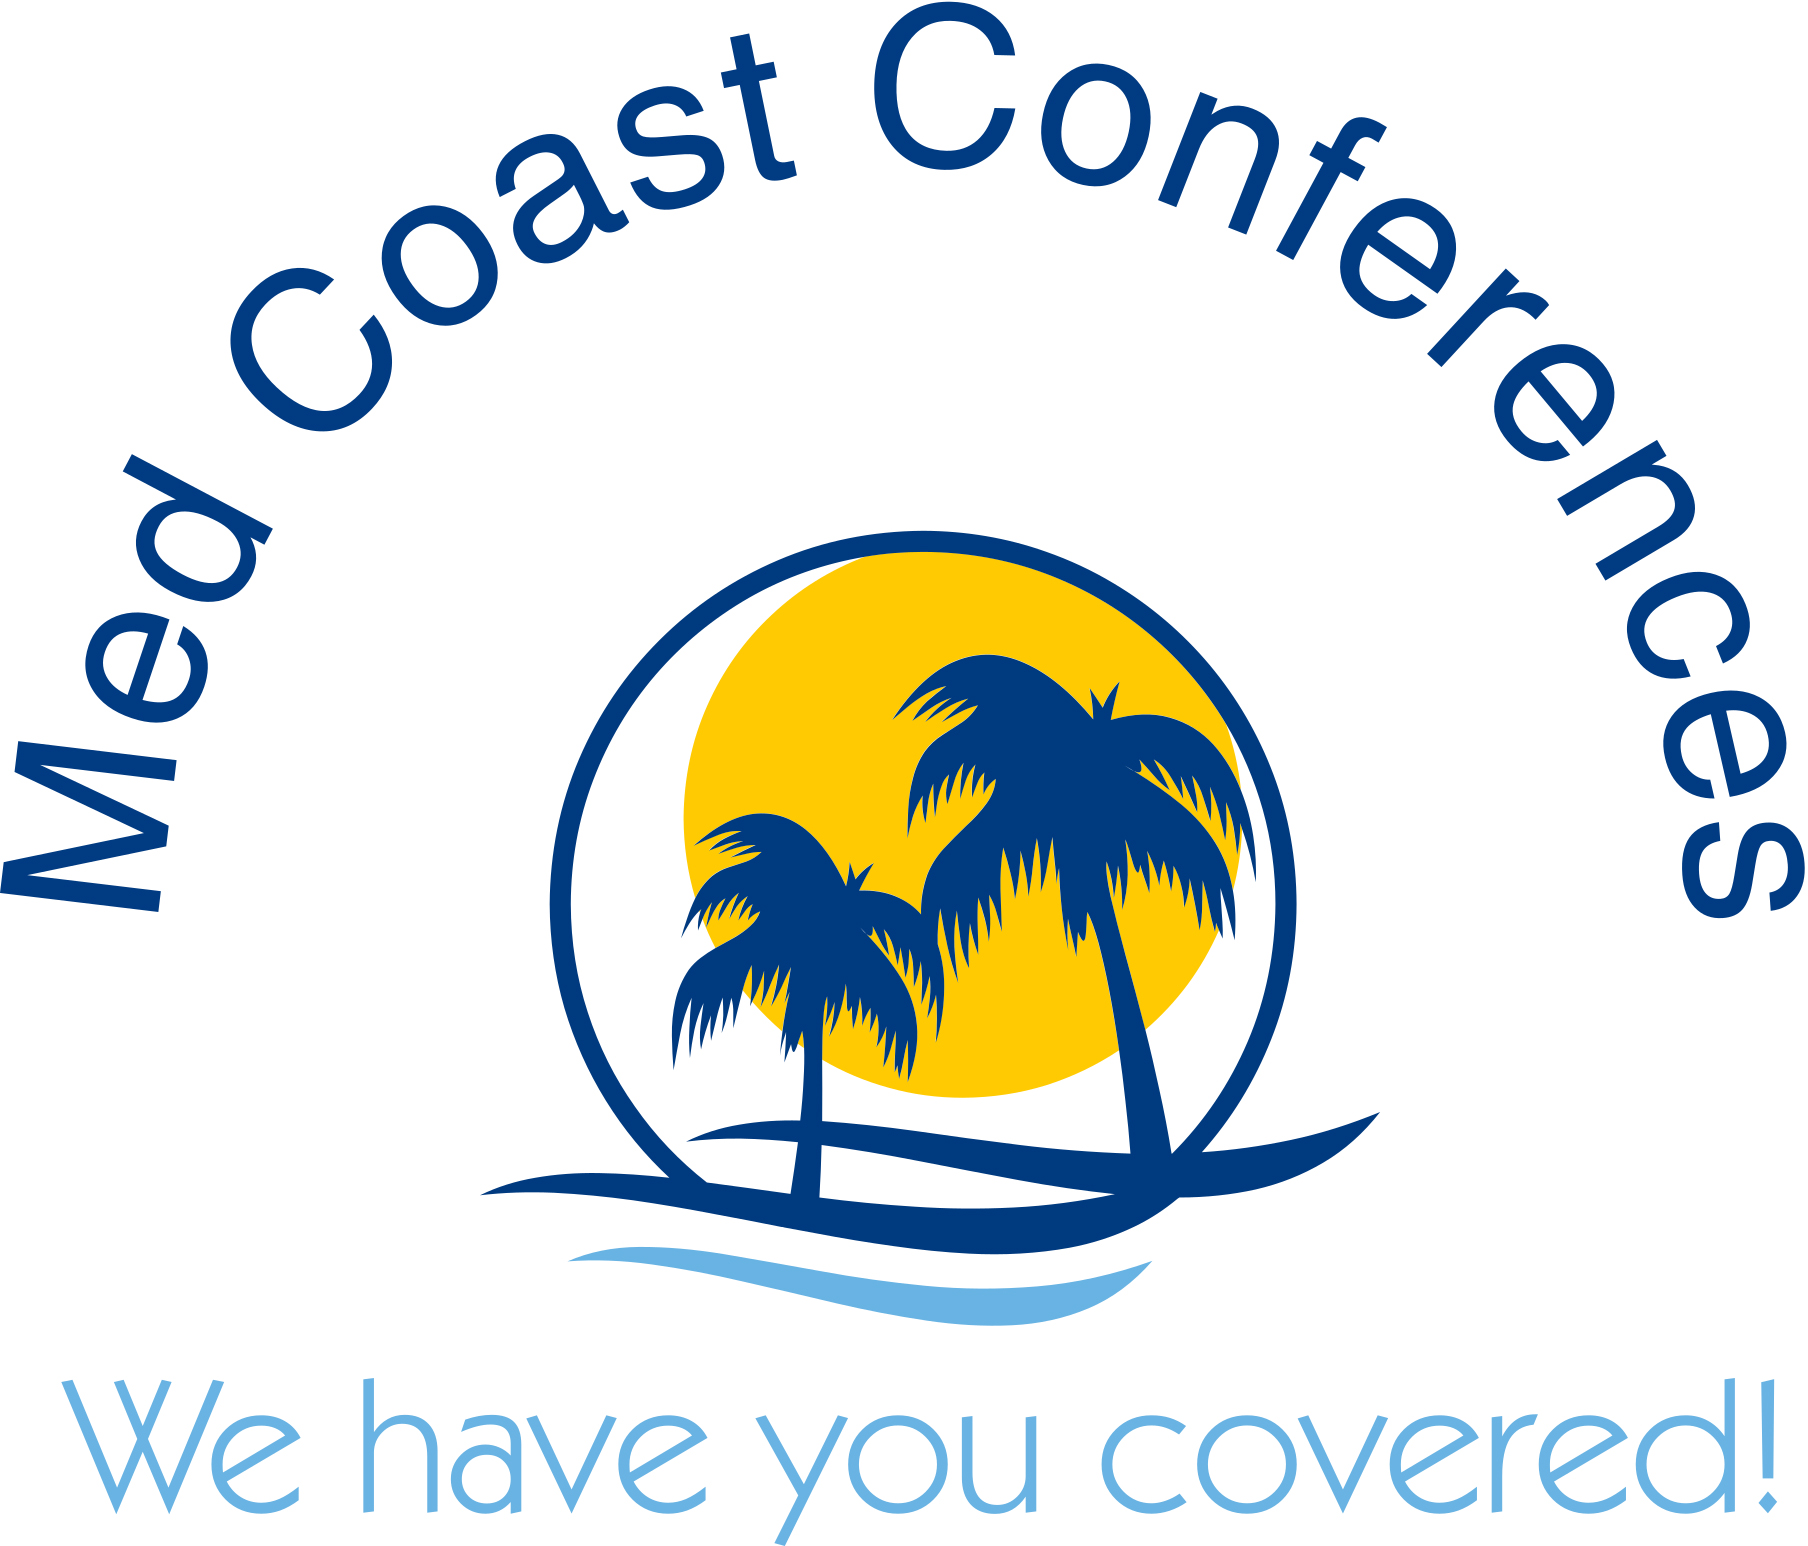 At  Med Coast Conferences,  we offer on-site medical conference coverage in California. We require no per diem or housing fees, and our experienced writers are local to the area. We also offer bespoke medical content for your medical publication in tune with your style considerations. All our writers have advanced degrees in journalism and medicine, as well as much experience reporting for the top medical publications. Our prices are competitive and you can hire us for one gig or several.